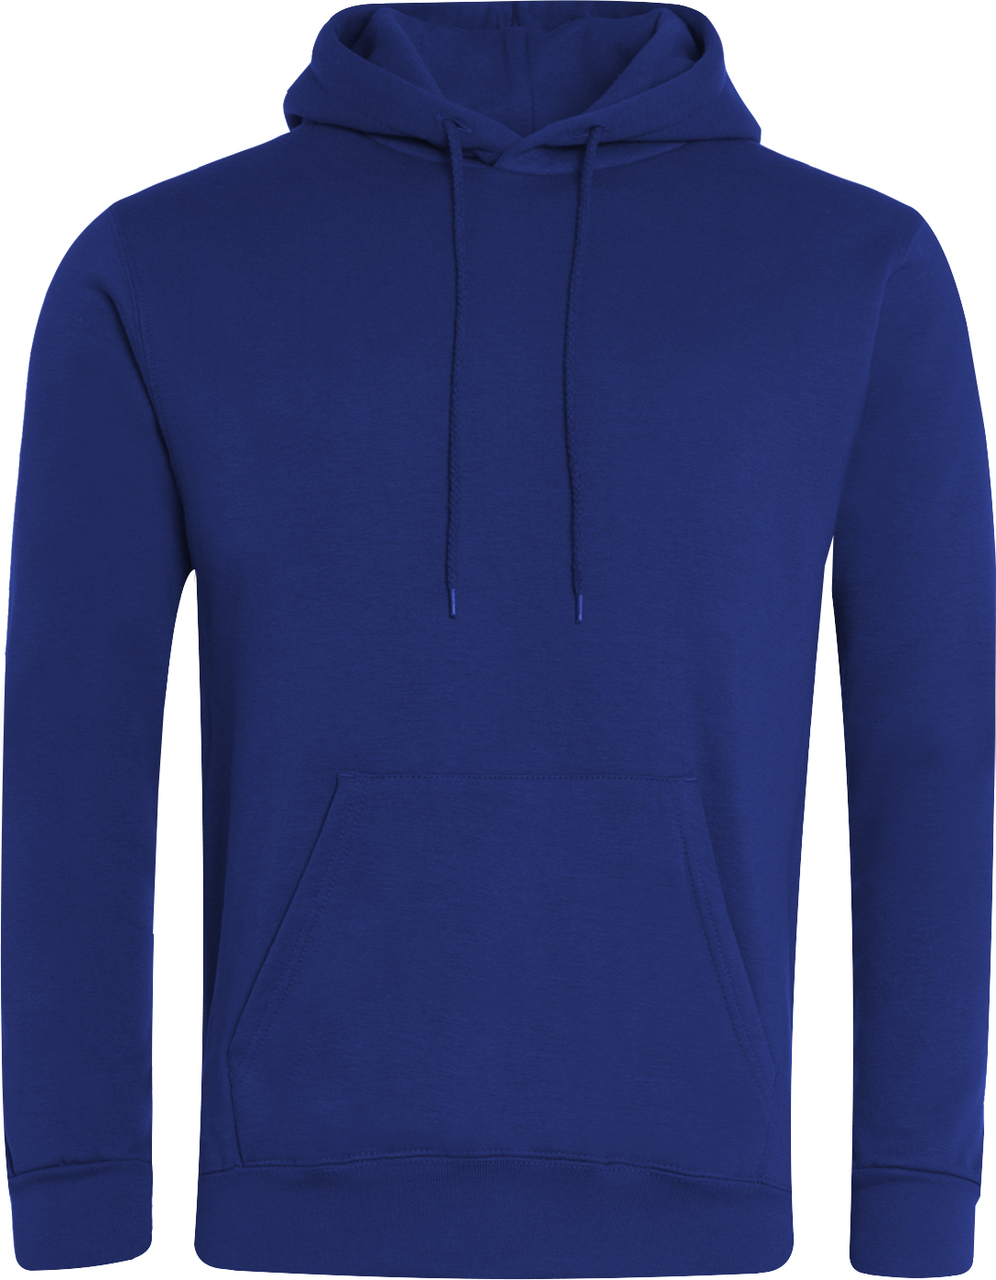 Adults Hooded Pullover (Hoody) (Multiple Colours)